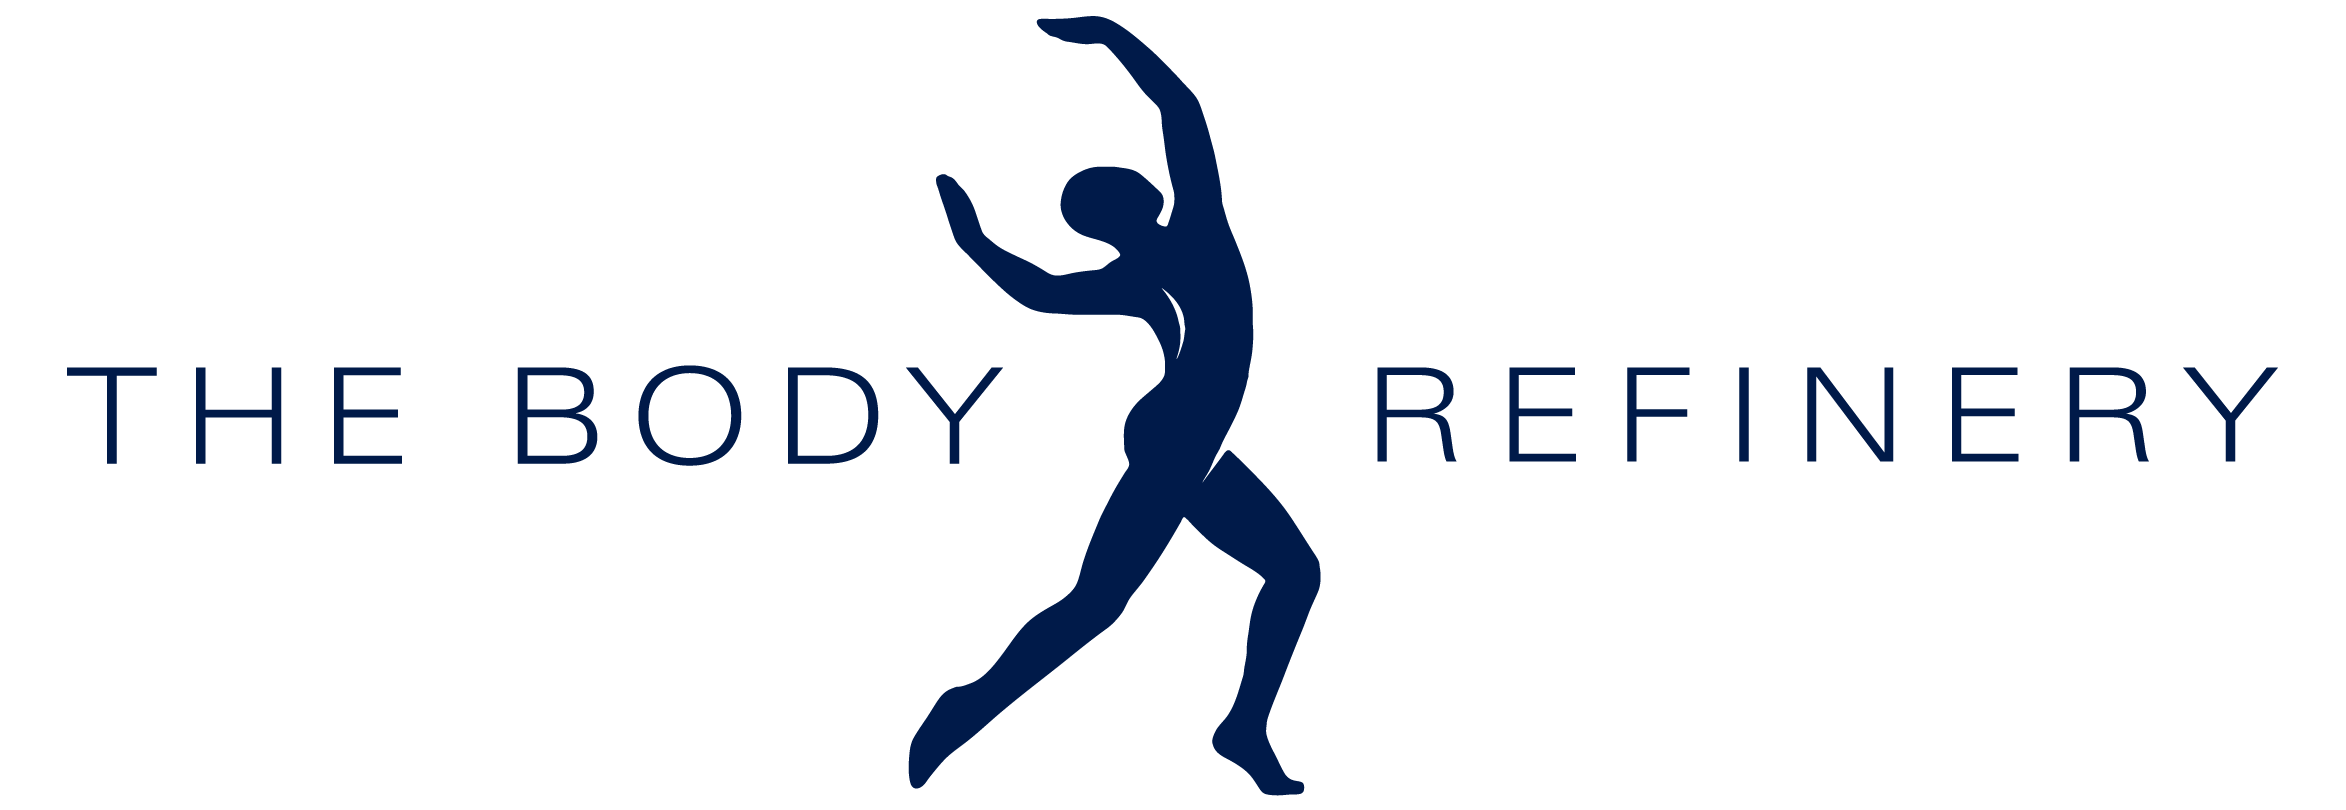 The Body Refinery